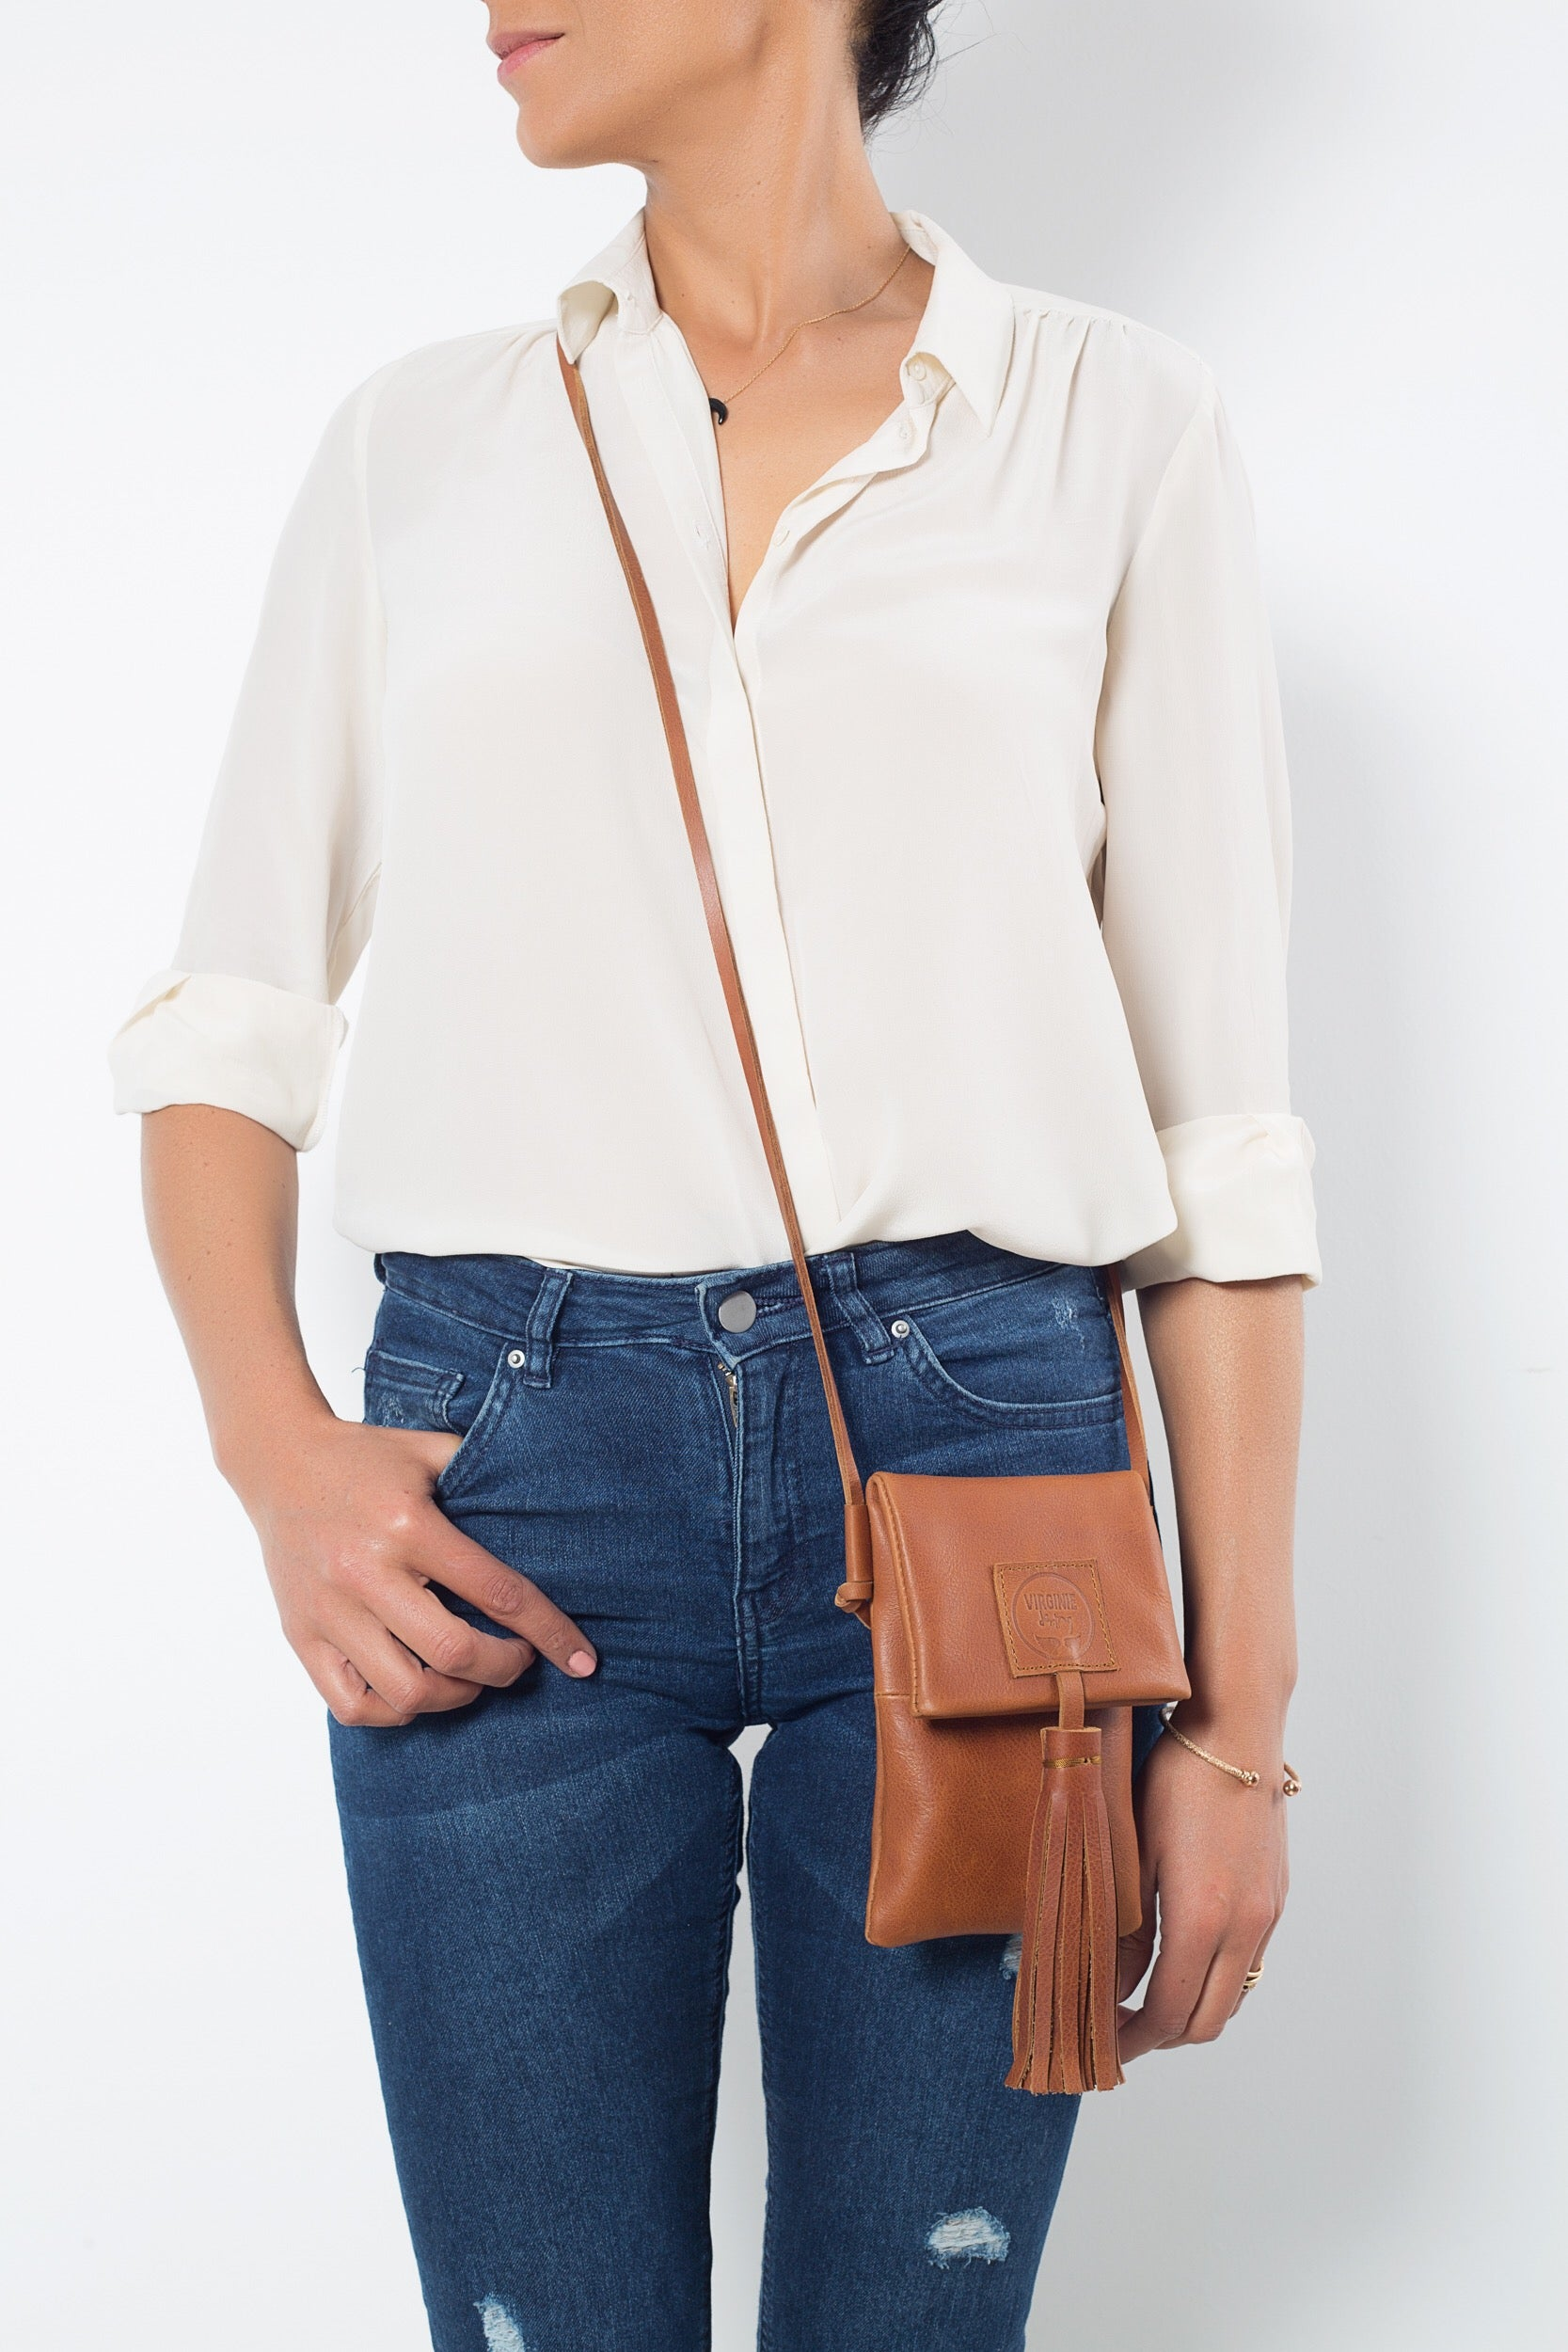 Zia Natural Brown Leather Bag Virginie Darling - Handbag